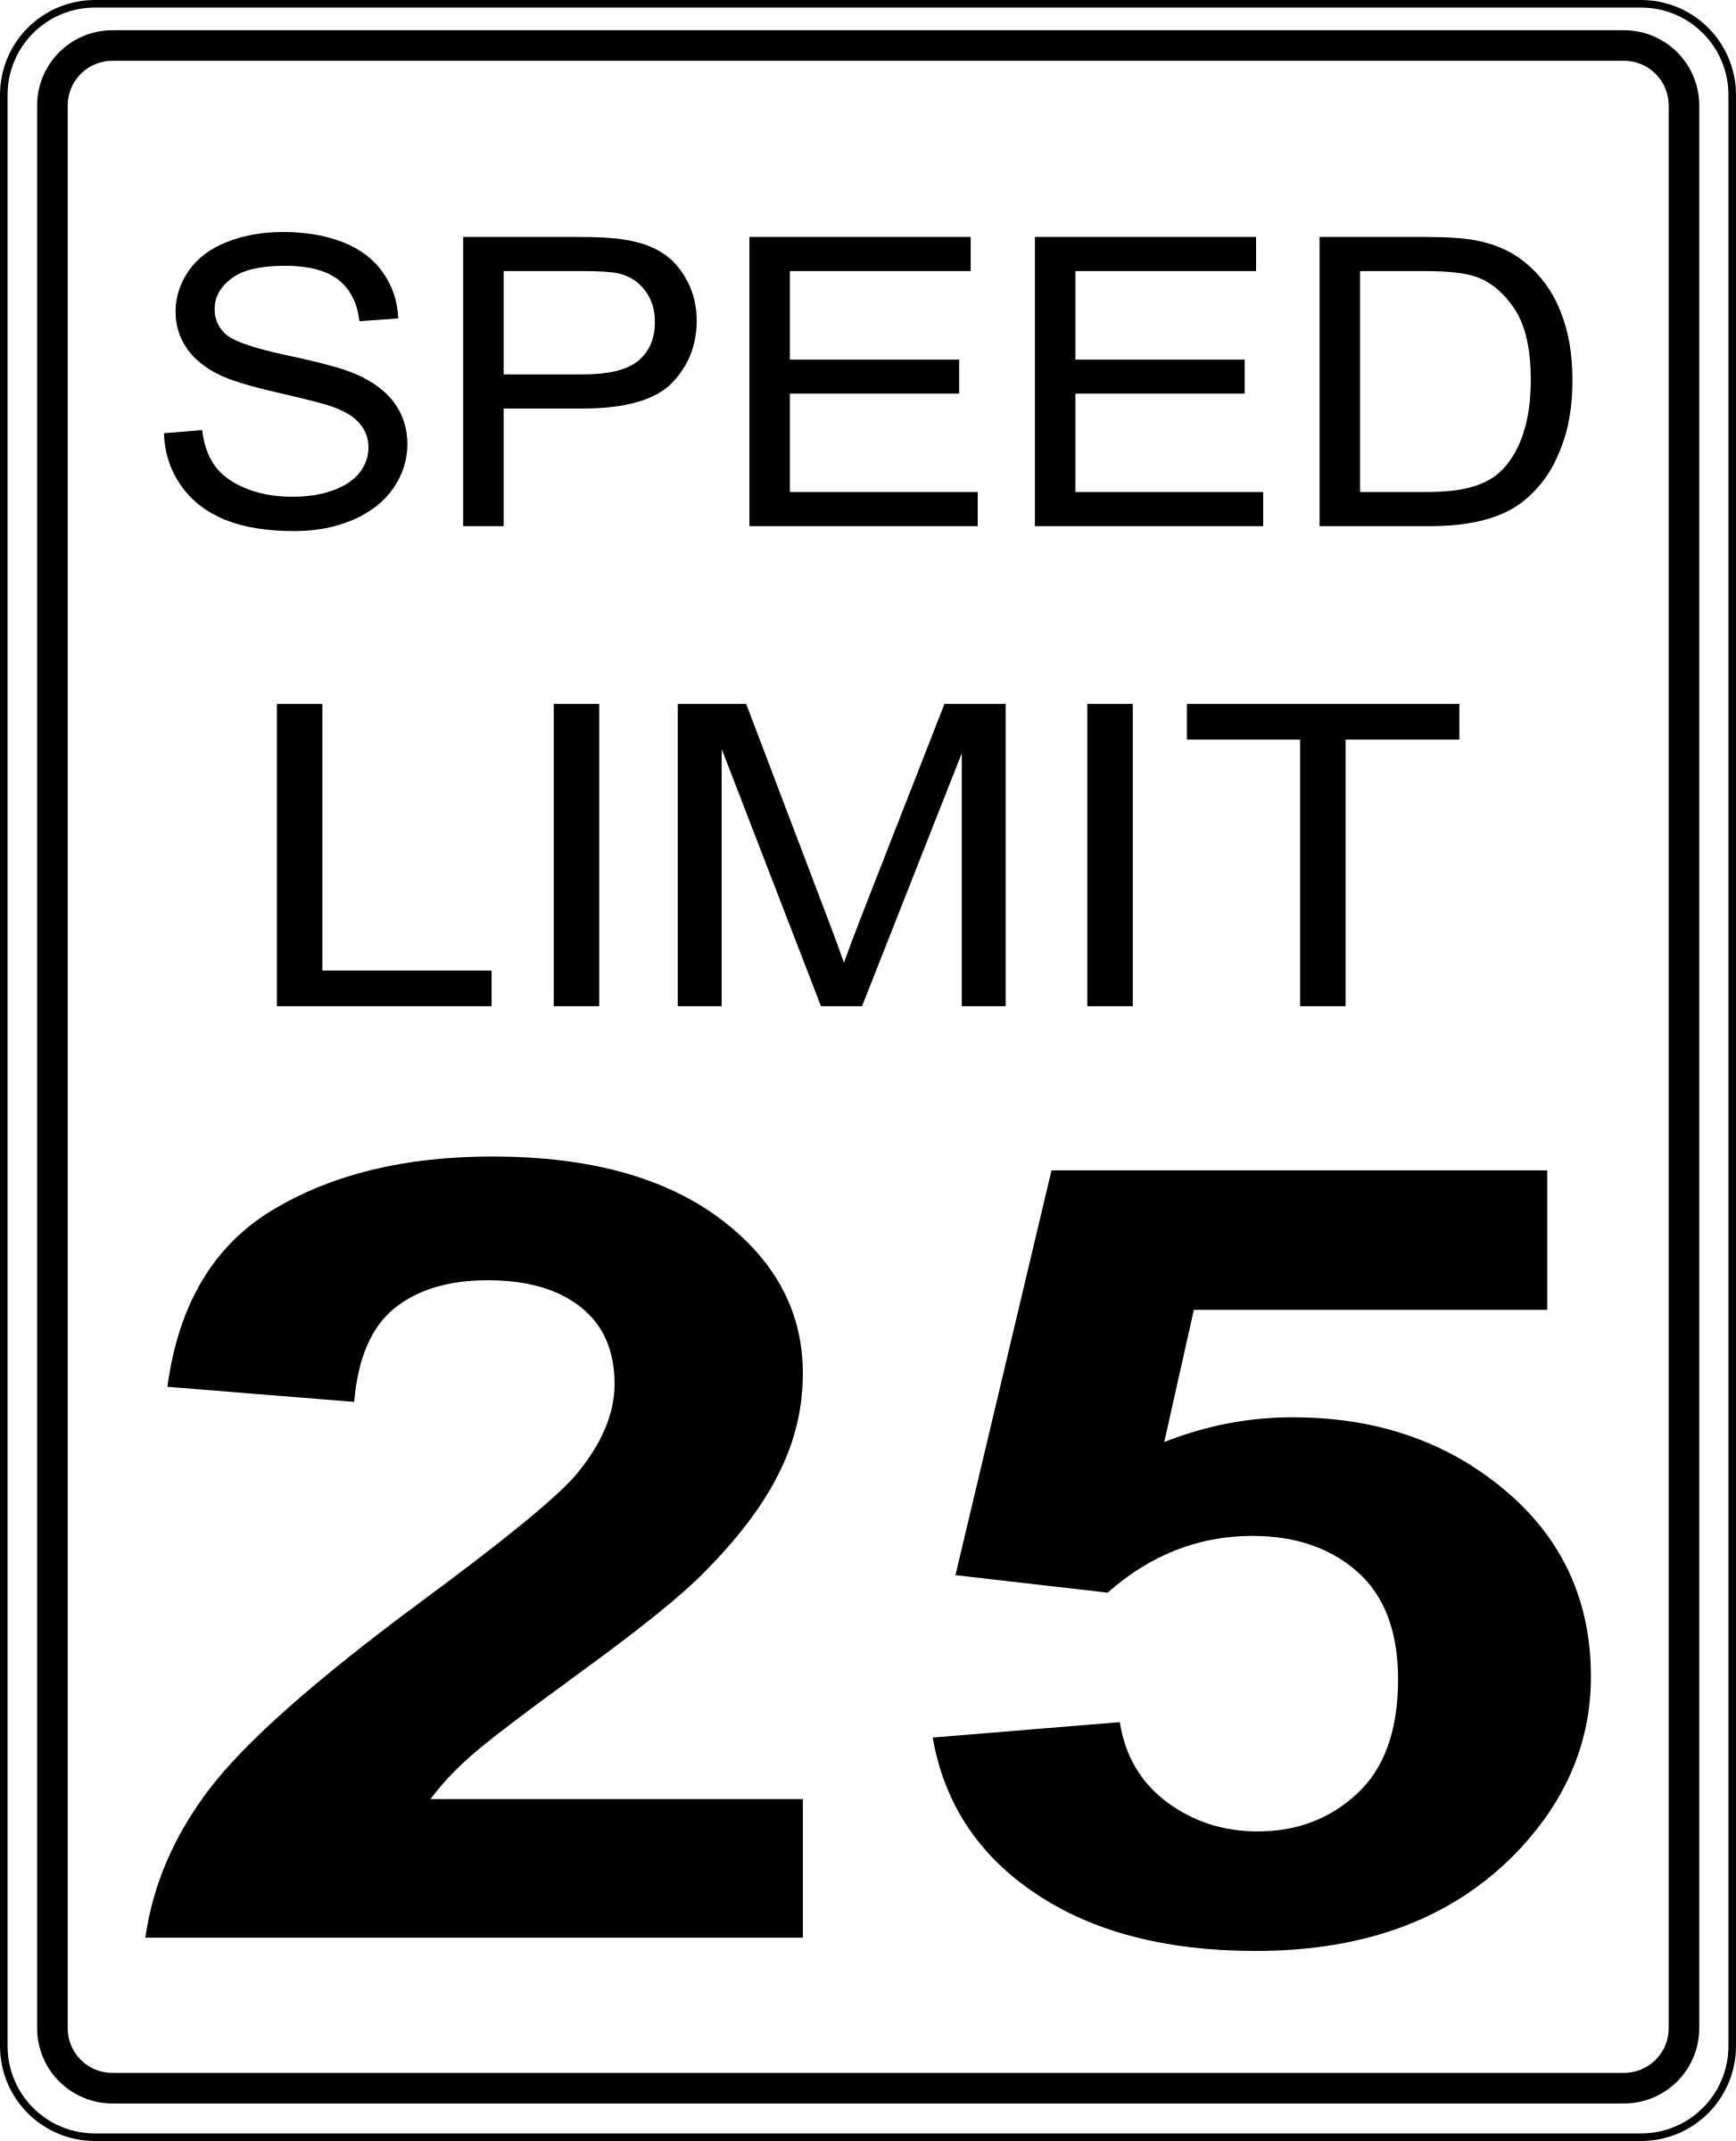 CA speed limit 25 roadsign by paulprogrammer